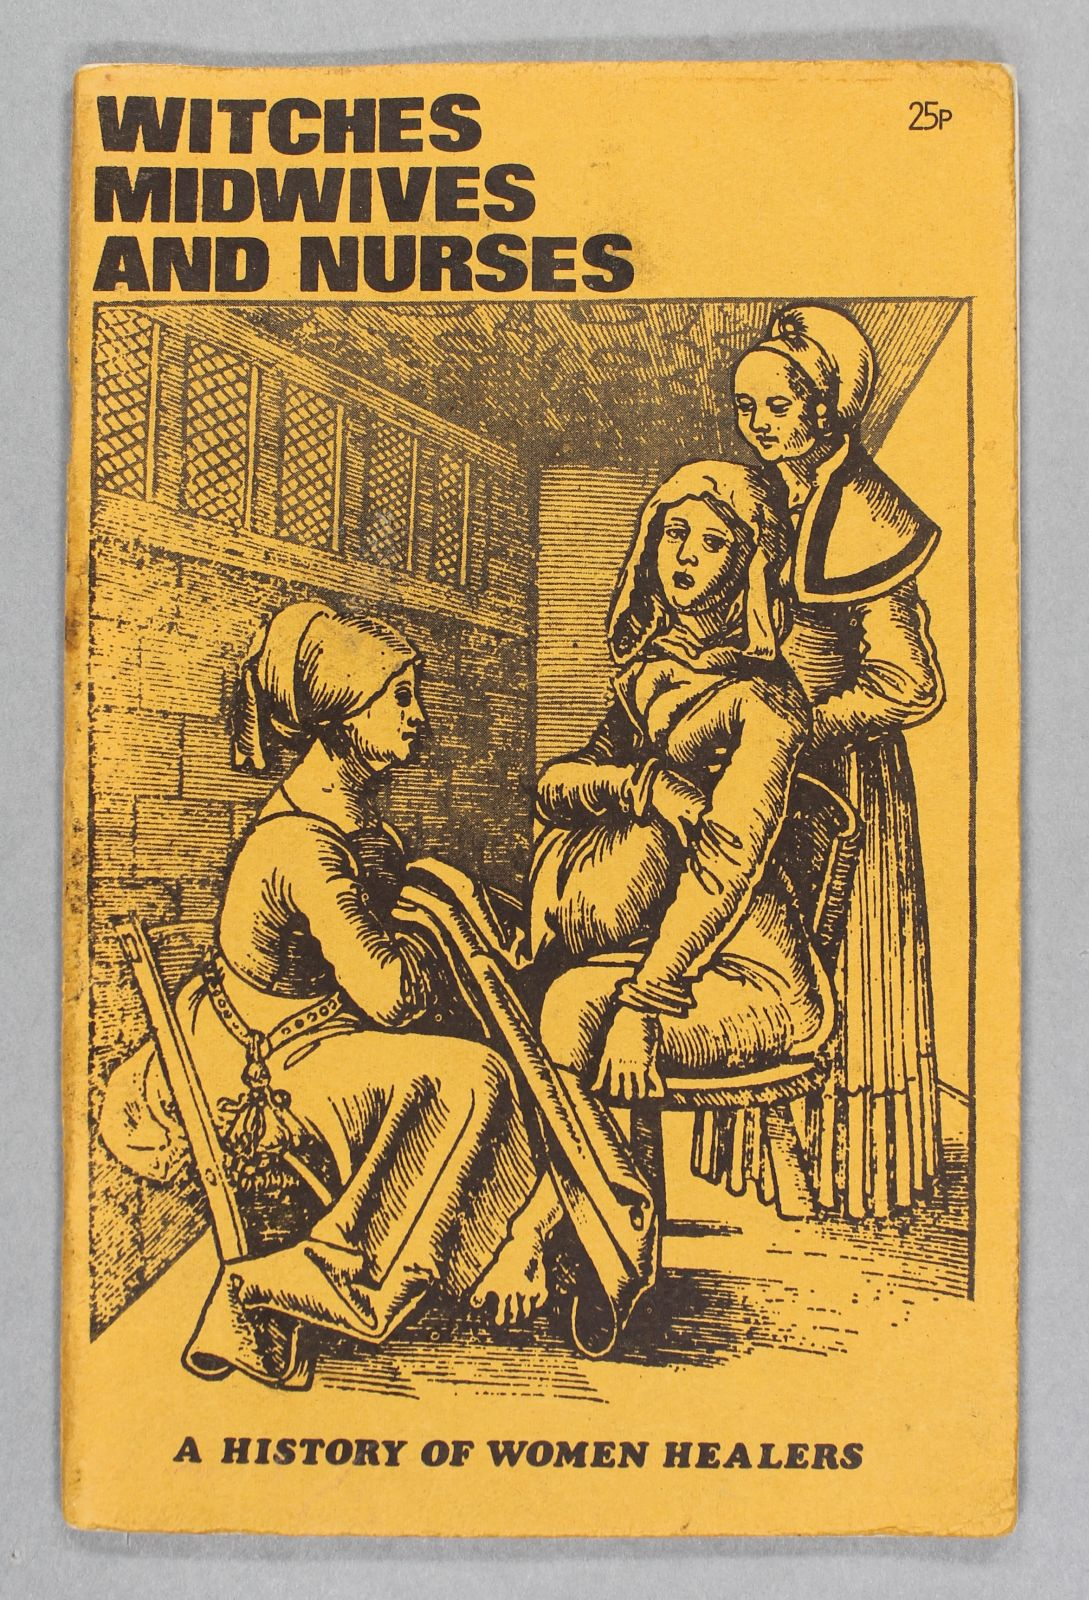 """A yellow book with a black and white illustration showing a woman tending to a woman who is pregnant. At the bottom it says, """"A history of women healers""""."""